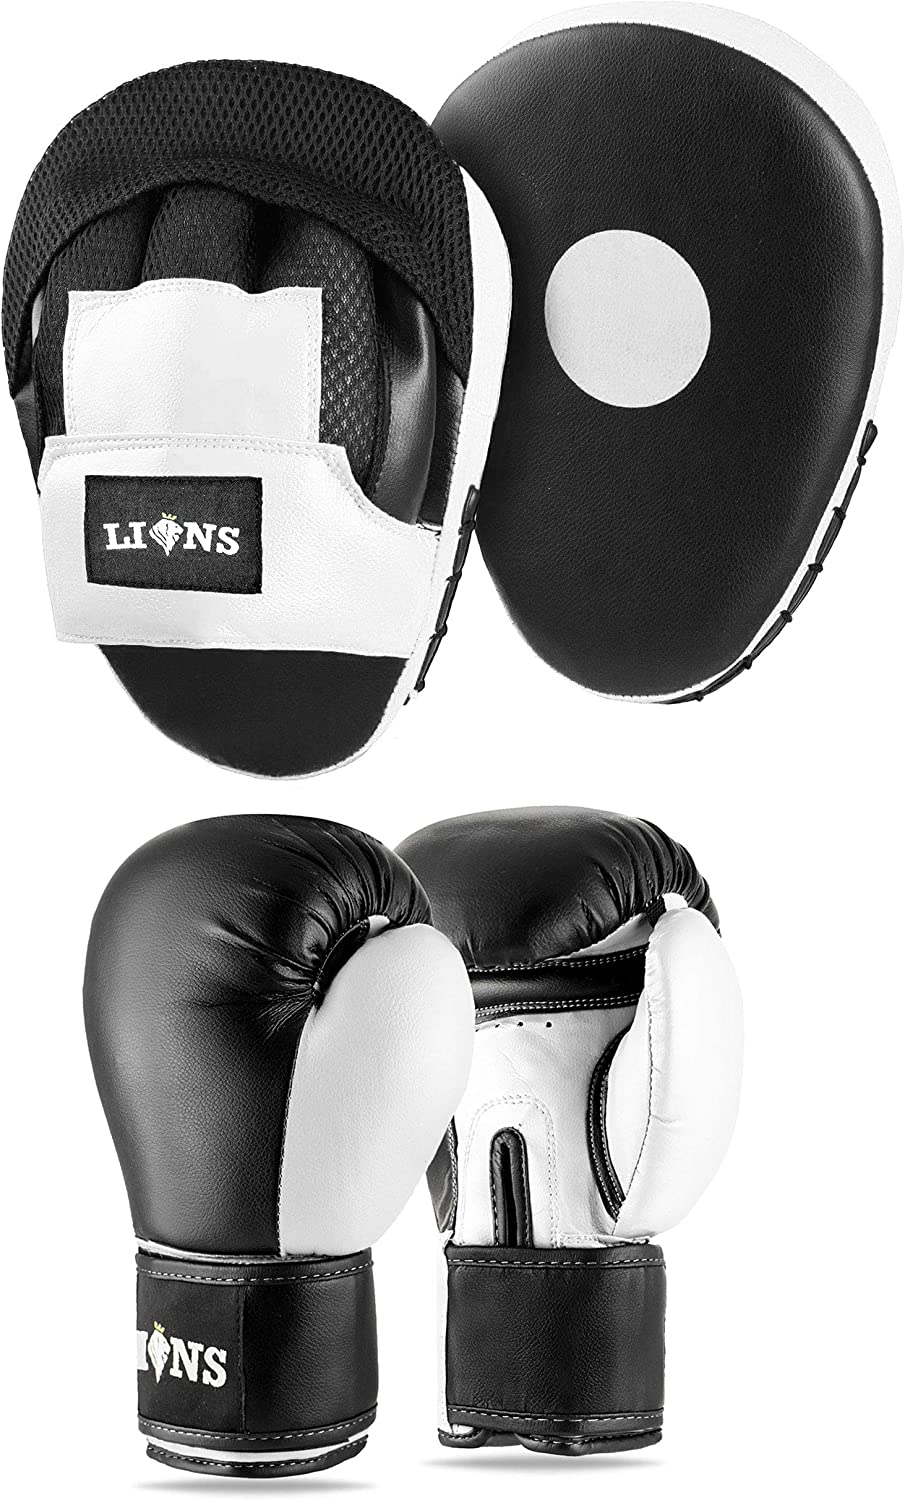 Rex Sports Kids Boxing Focus Pads White gold Curved Pads Hook and Jabs Pads Pair